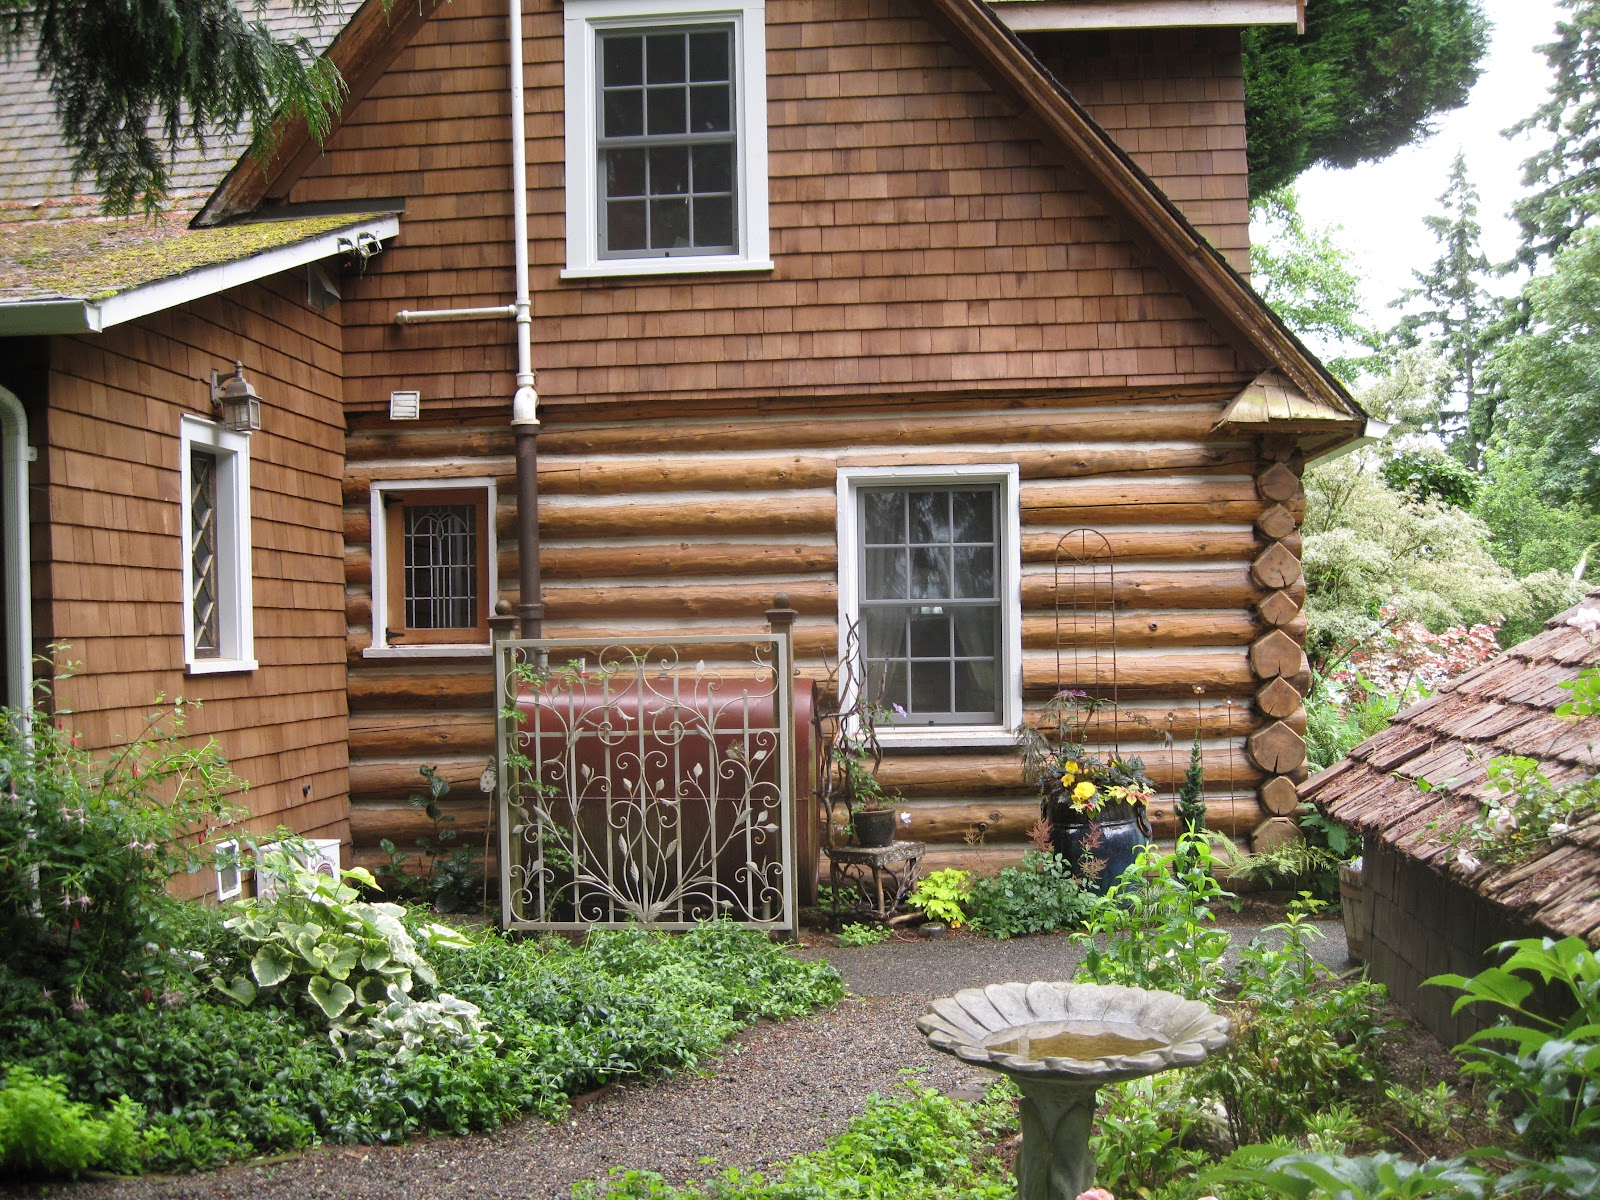 Little garden house -  Our Two Acres On Horsehead Bay Have A Sweet History Says Terrie The Log Cabin Was Built By Hand In The Early 1920s A Barn Pasture And Root Cellar